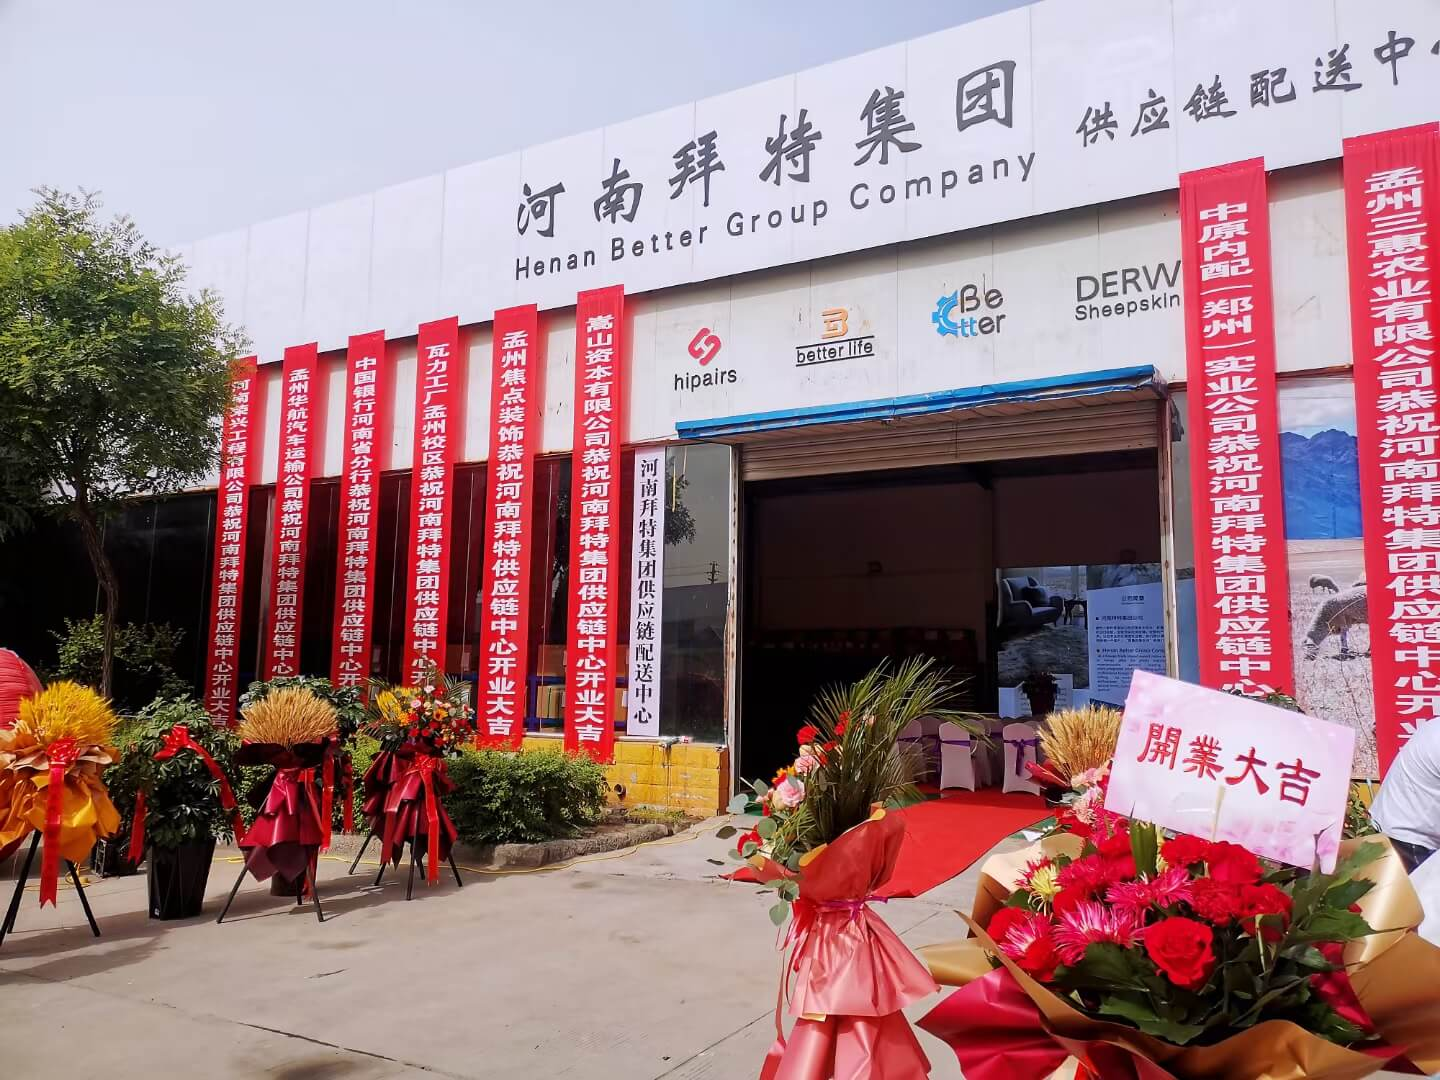 may 2021 meng zhou jiao zuo he nan province our warehouse moved to a new address4